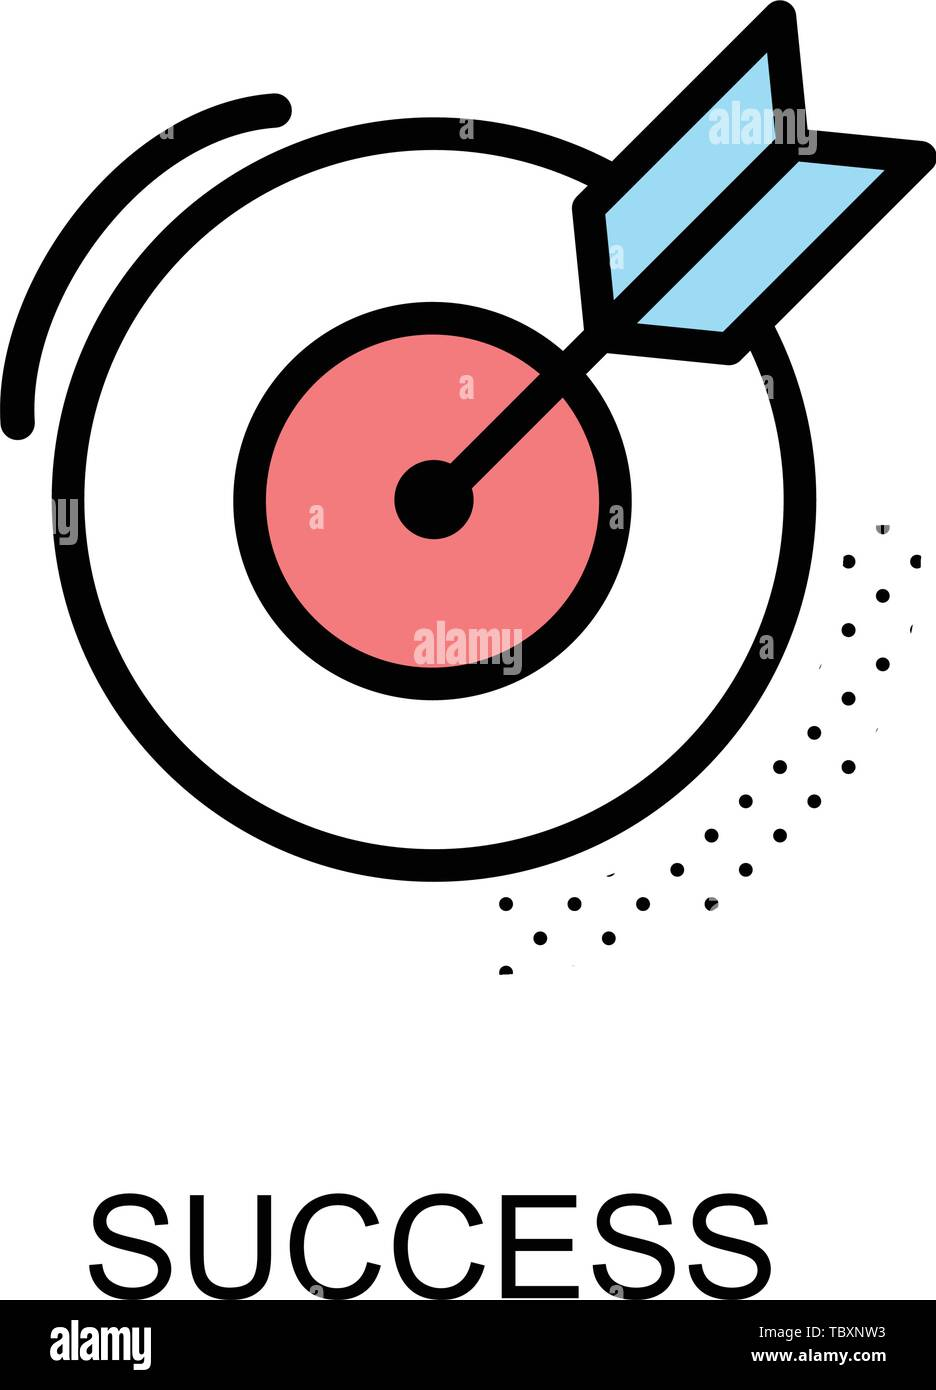 0ad0340d74c Success icon and arrow with dart board on white background illustration  design.vector